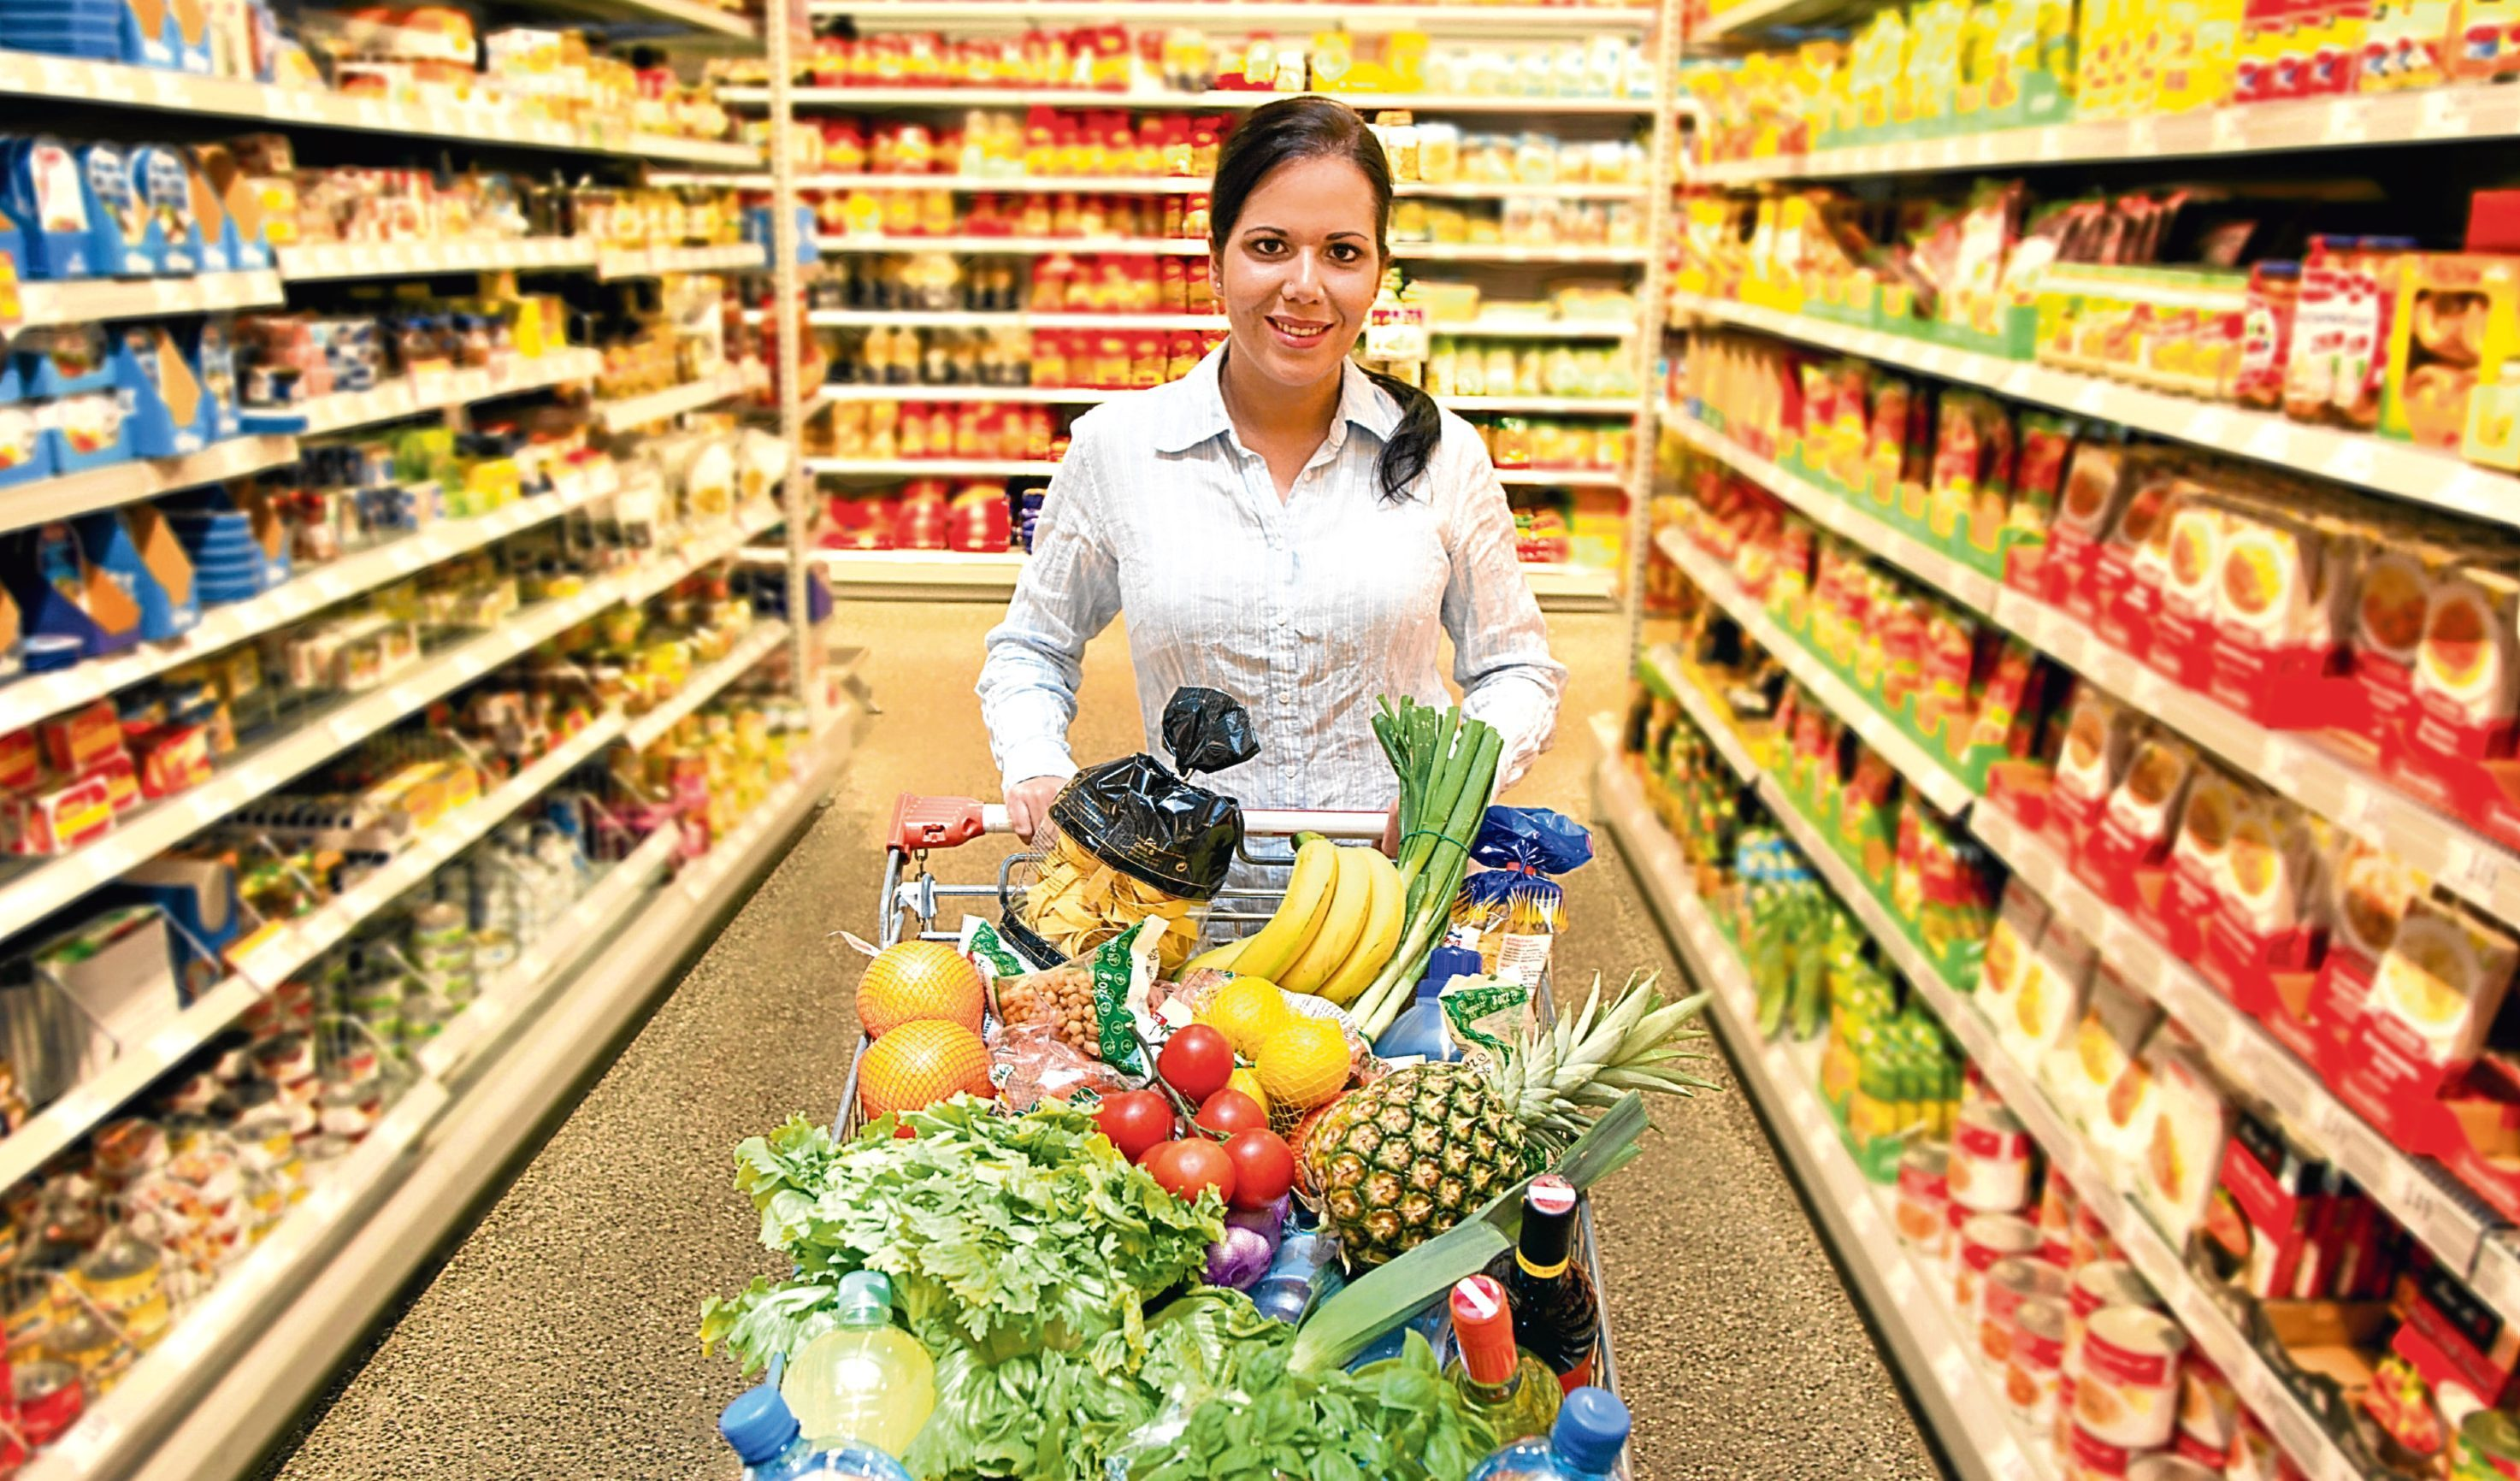 How much fruit and veg do you buy?